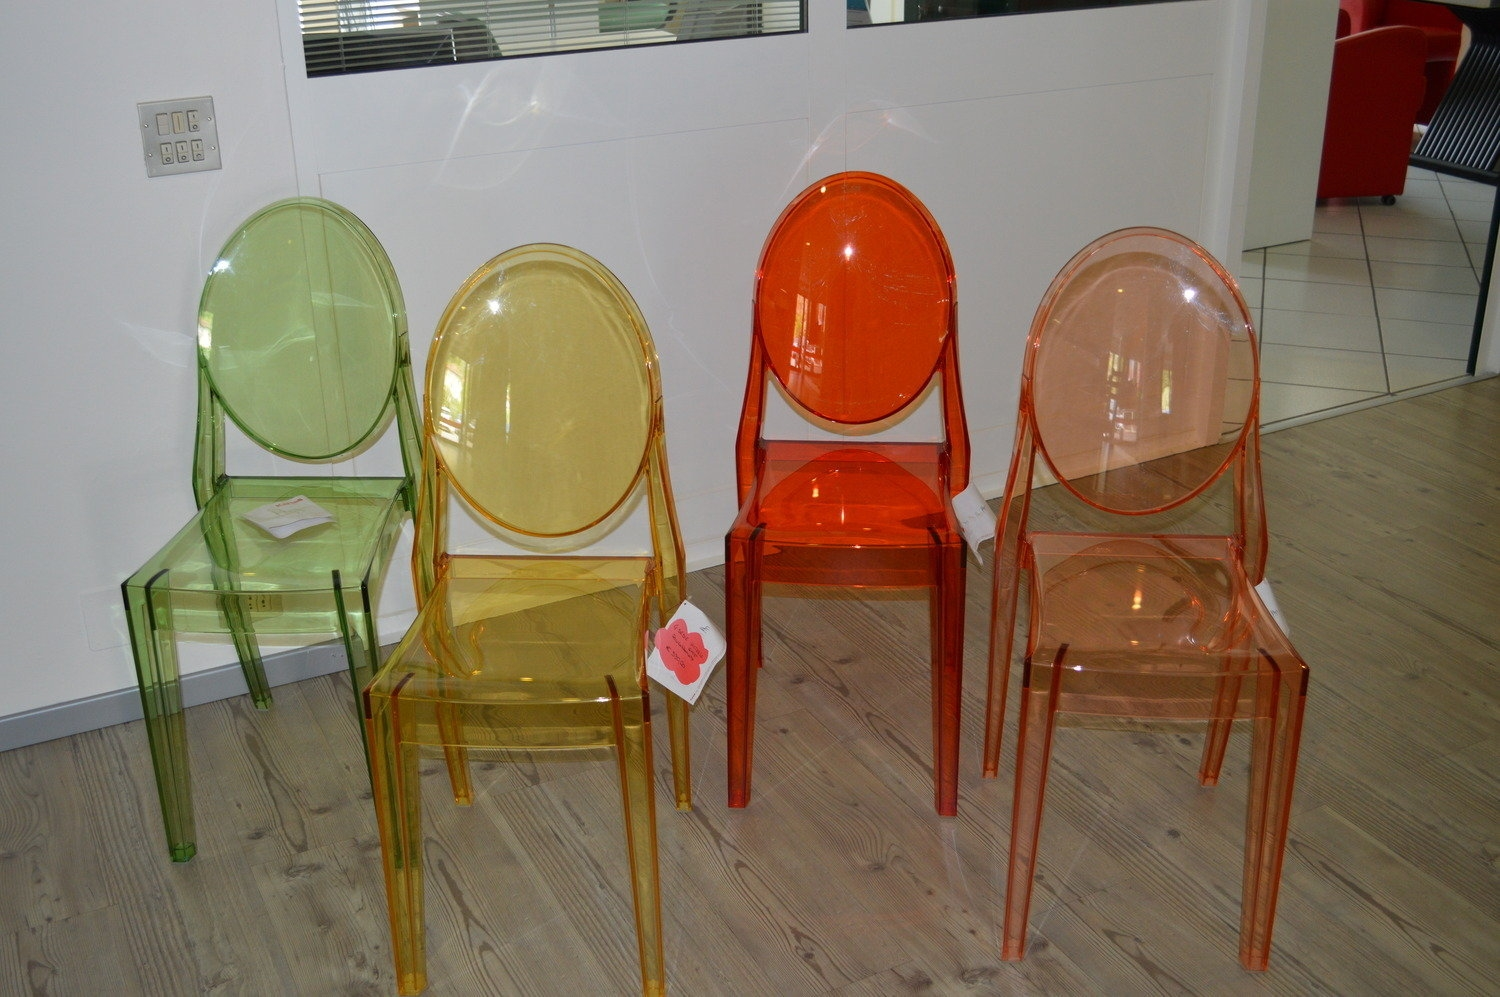 Emejing Outlet Kartell Noviglio Images - Skilifts.us - skilifts.us